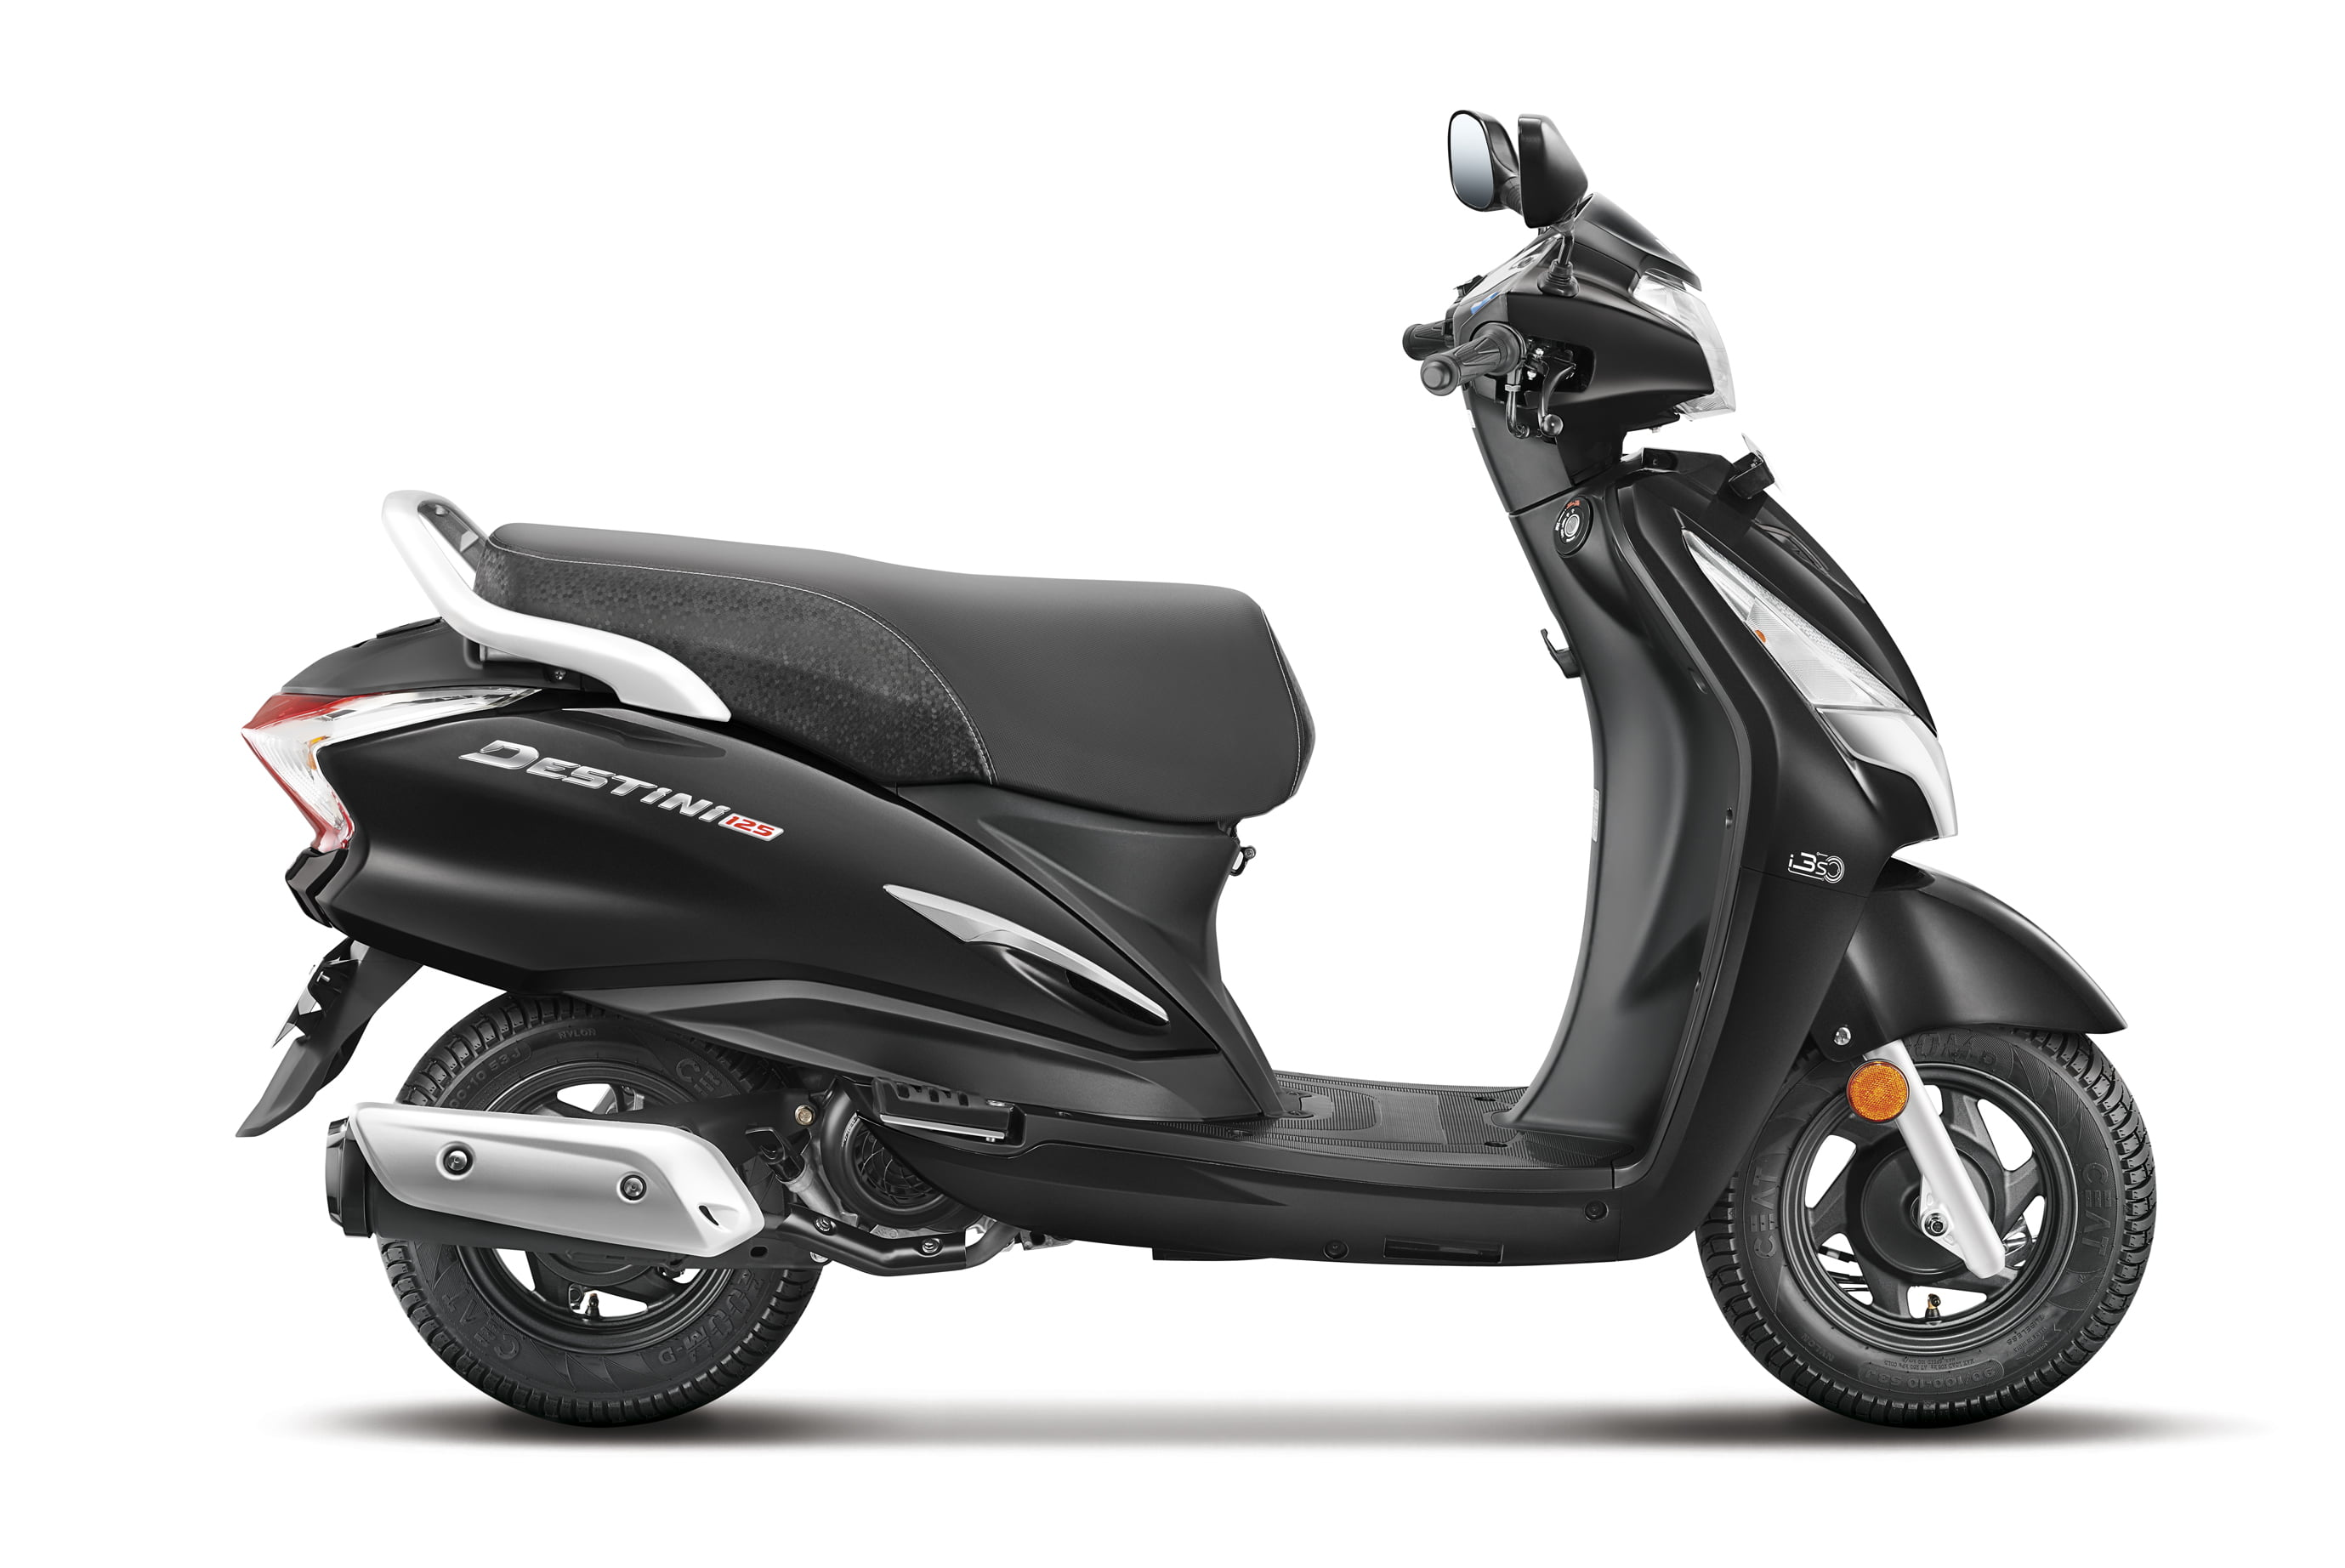 Hero Destini 125 Launched In India Rivals Activa 125 And